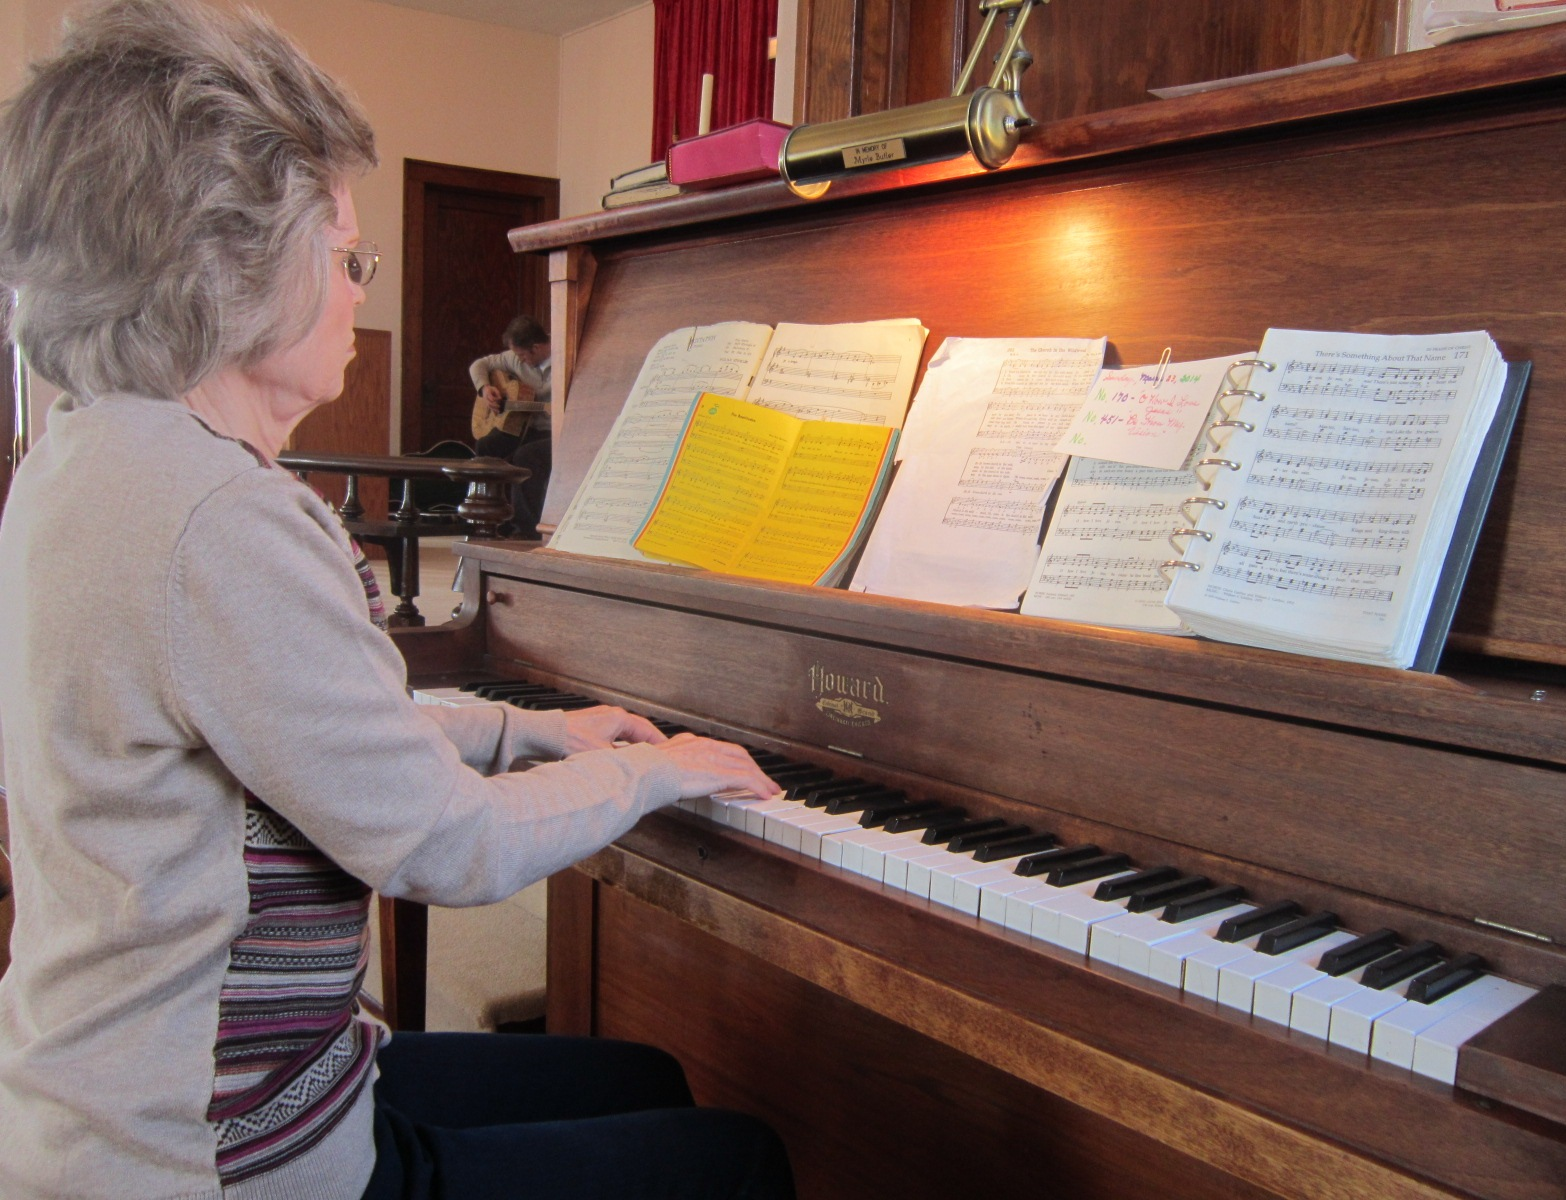 7 Church Pianist Priscilla Sleister.JPG